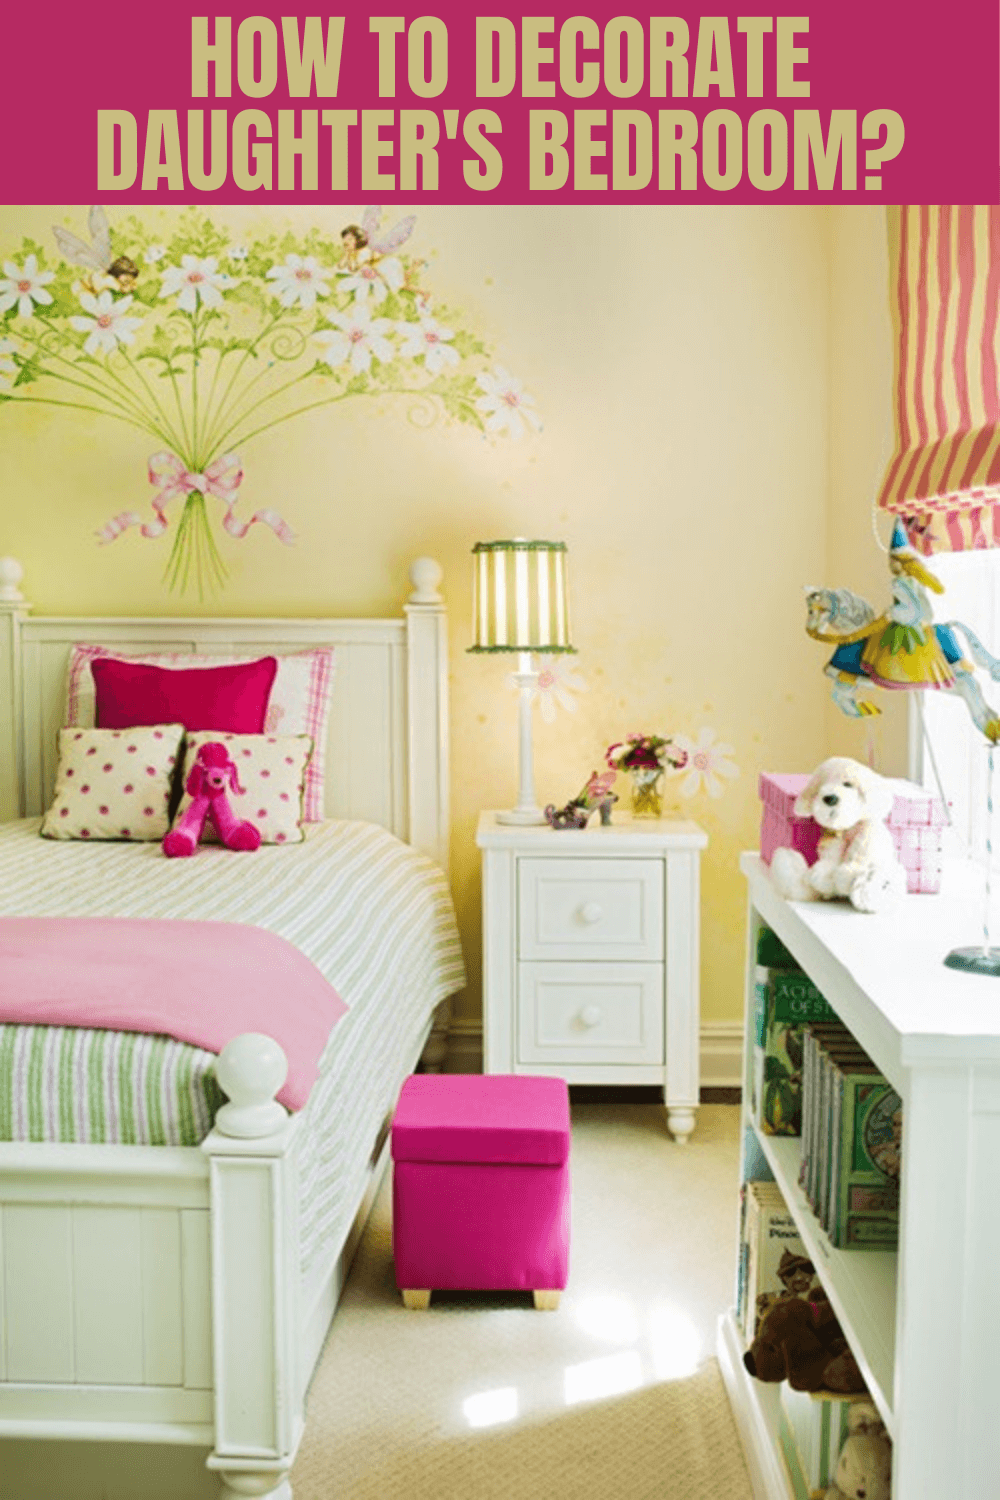 HOW TO DECORATE DAUGHTER'S BEDROOM